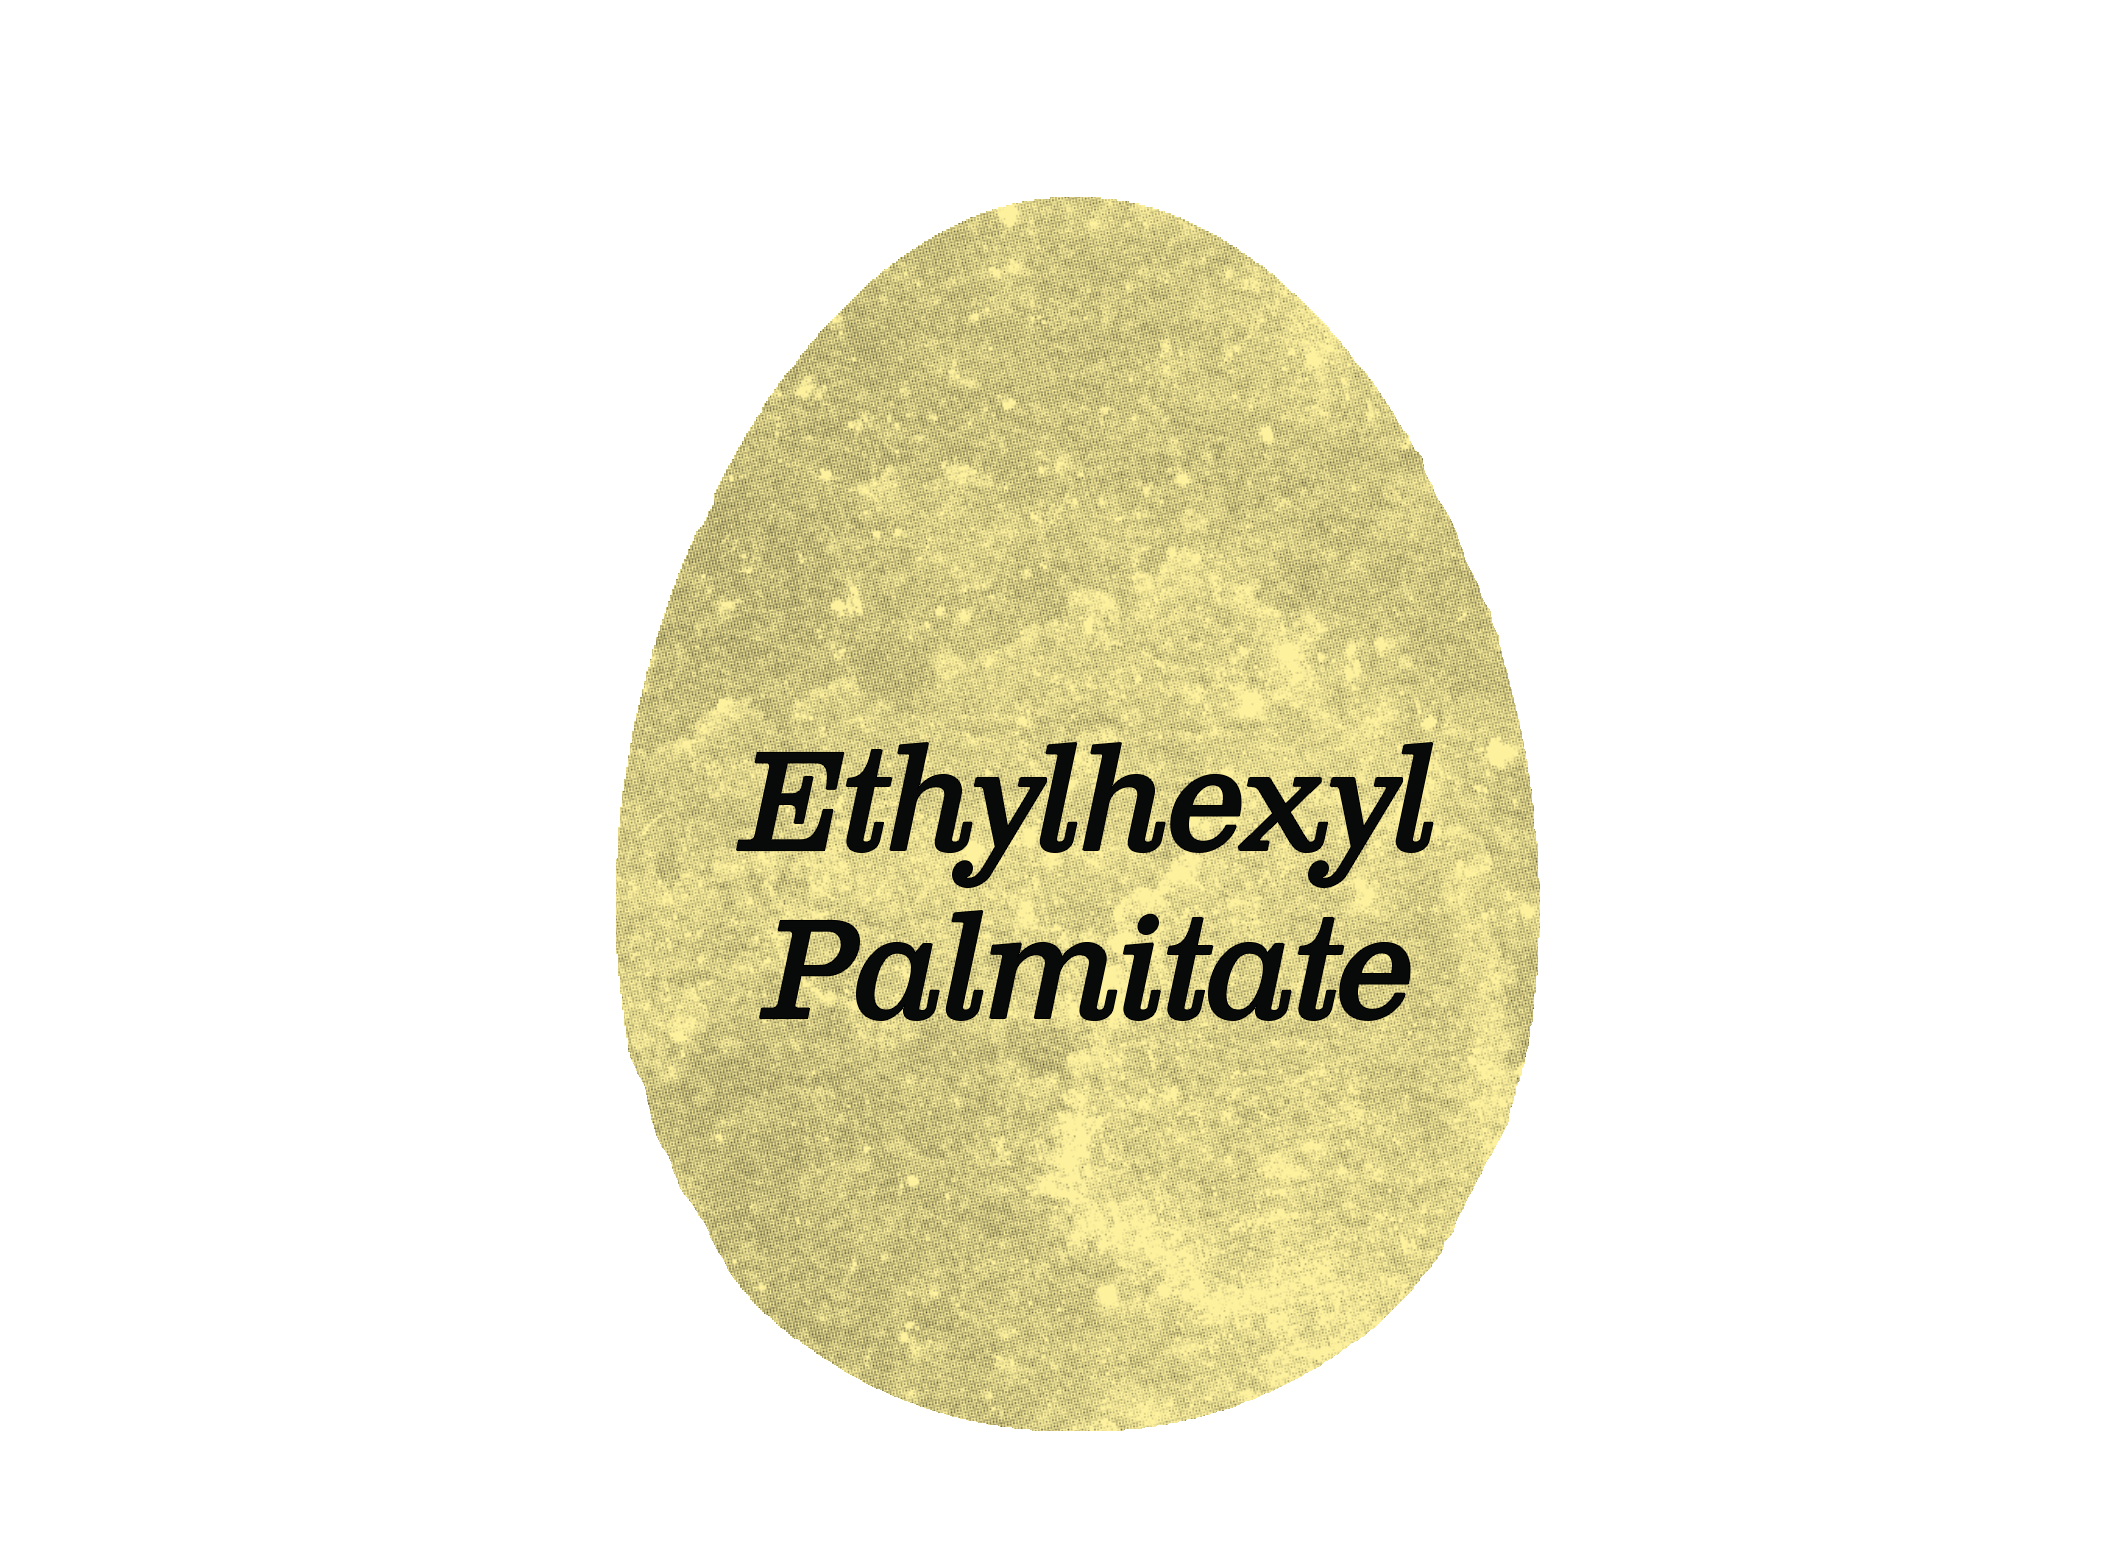 EthylhexylPalmitate-SelvaBeat.png